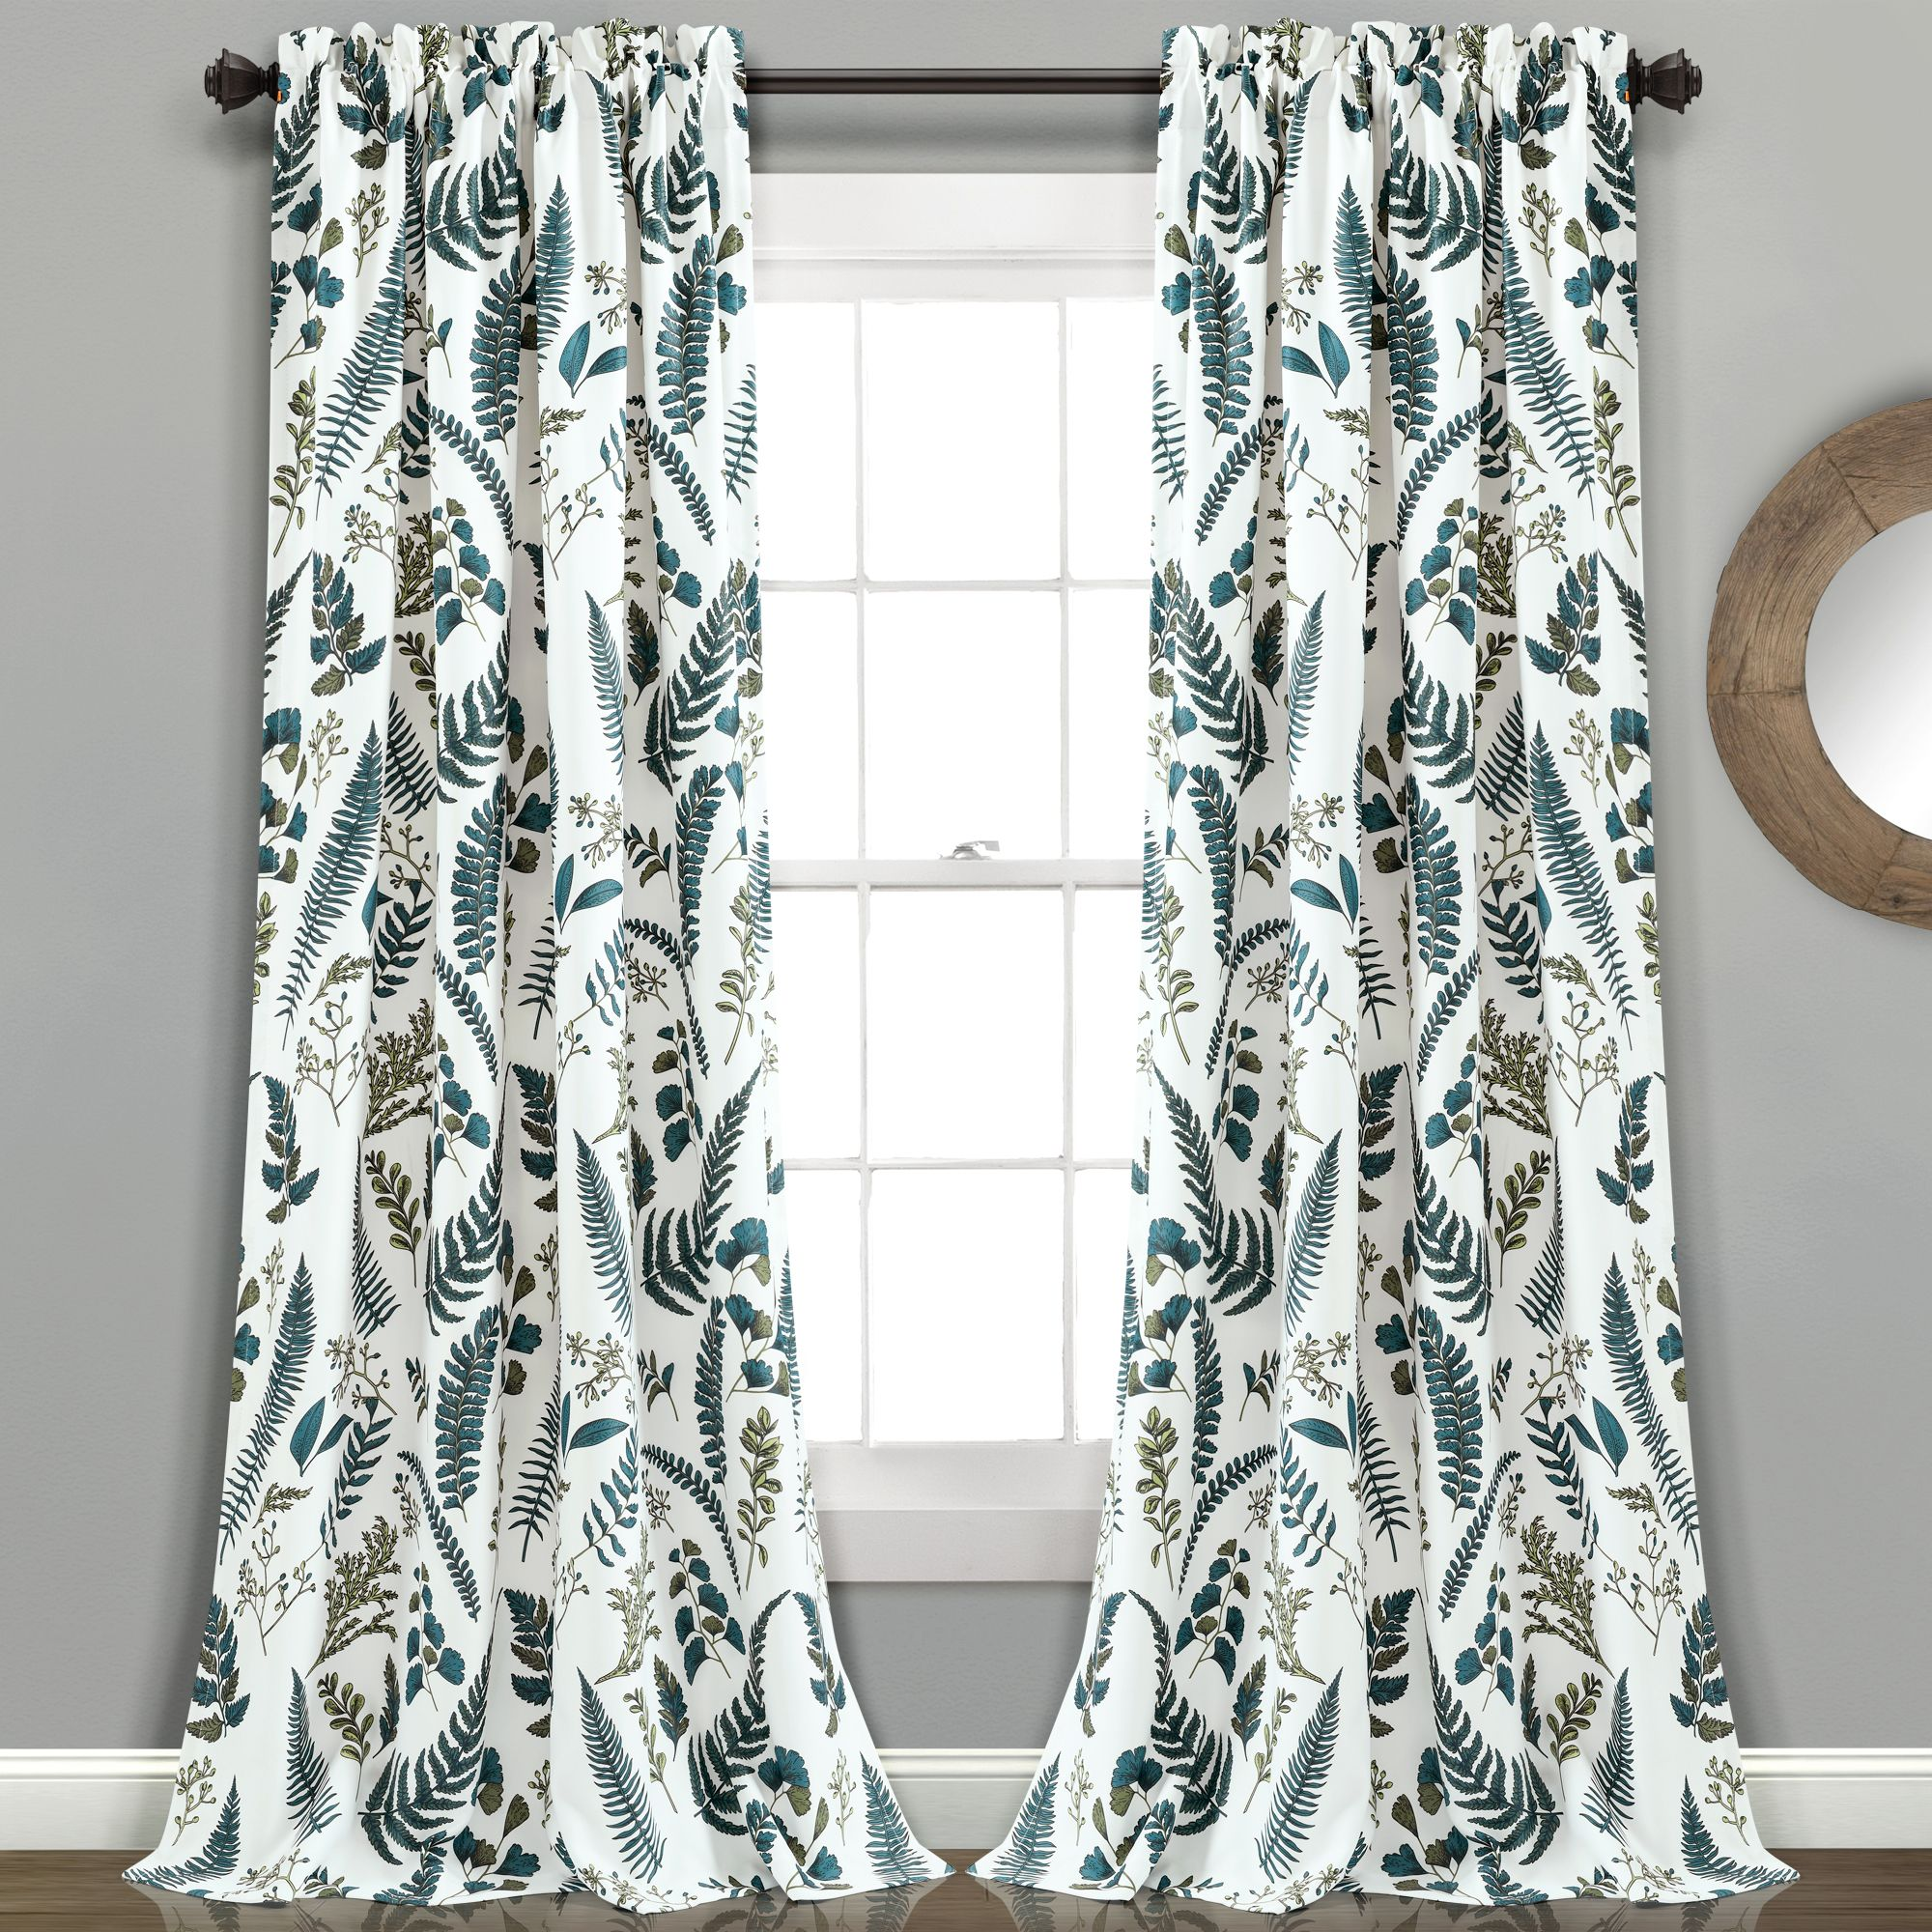 Devonia All Over Room Darkening Window Curtain Panel Set With